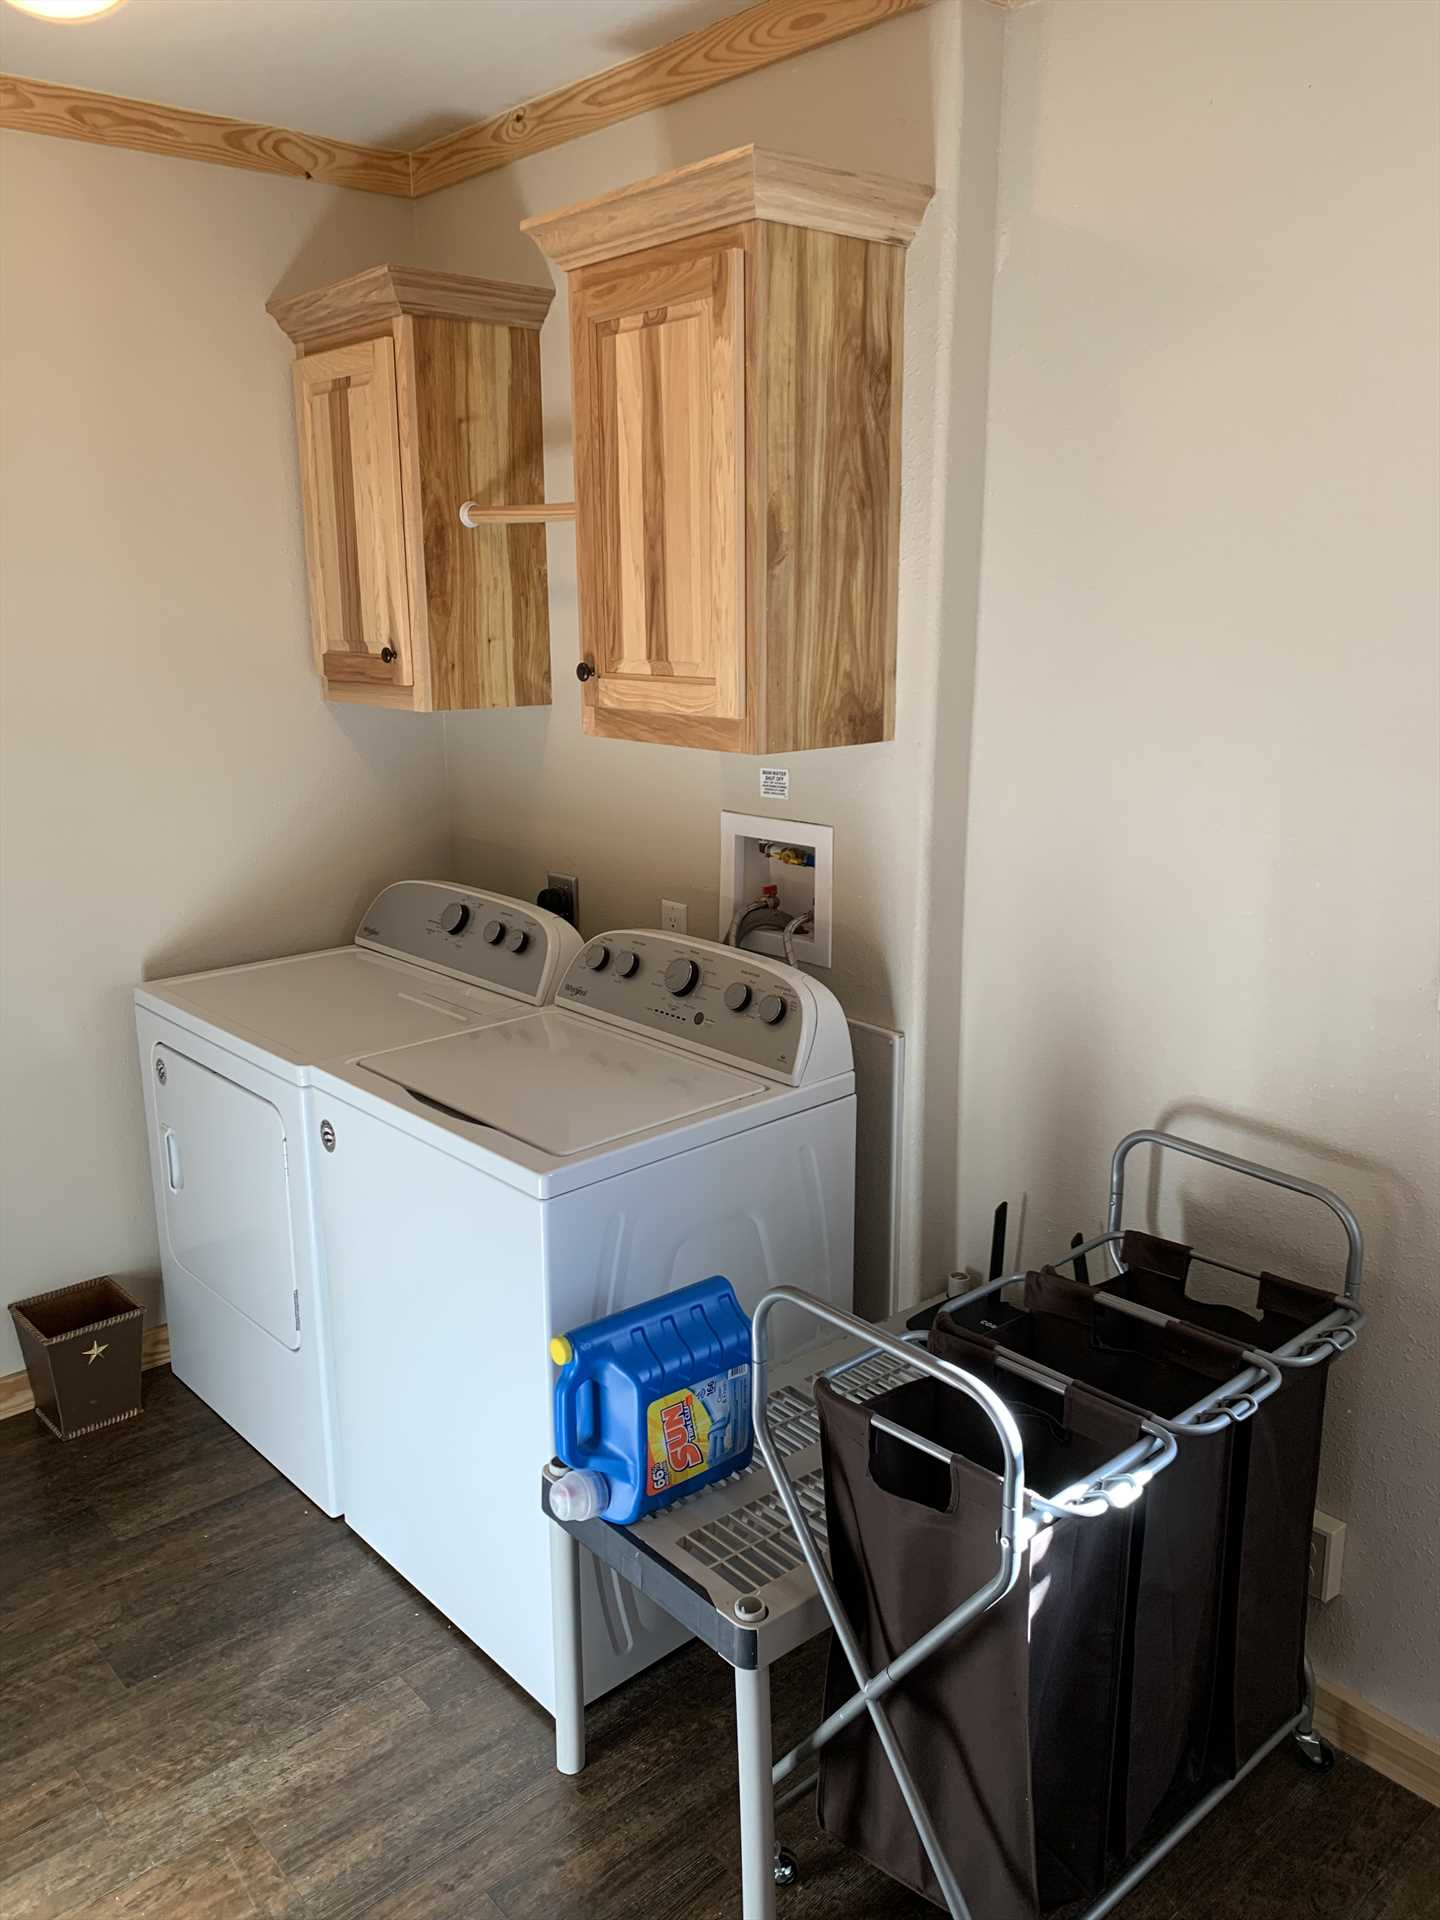 With up to 13 folks along on your holiday, you'll want to keep up with laundry! There's a utility room here for just that purpose.